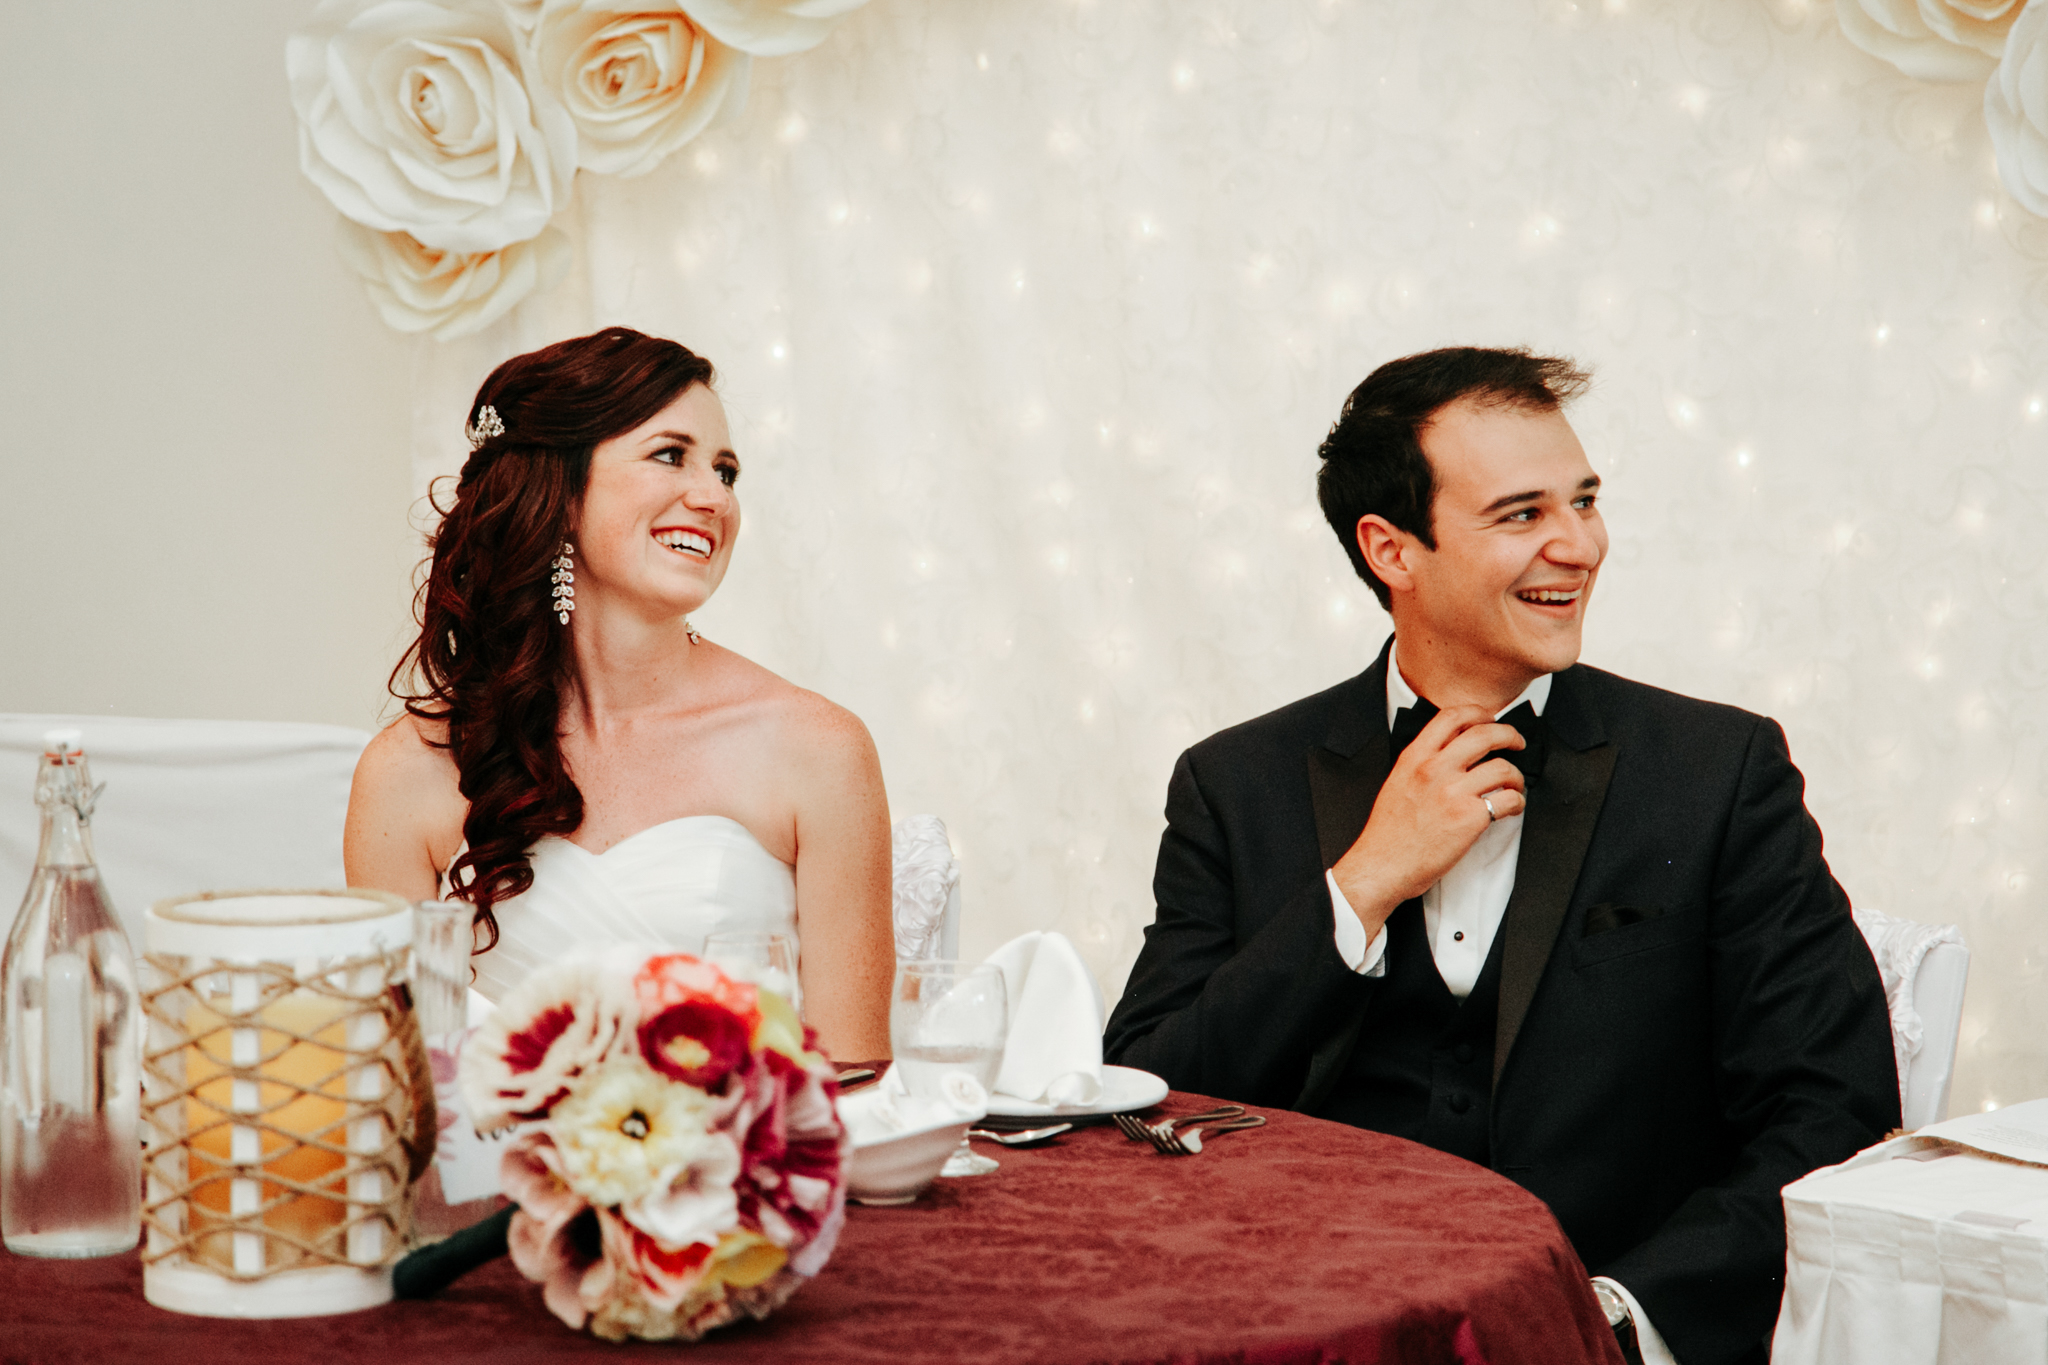 waterton-wedding-photography-love-and-be-loved-photographer-bayshore-inn-reception-image-photo-picture-18.jpg